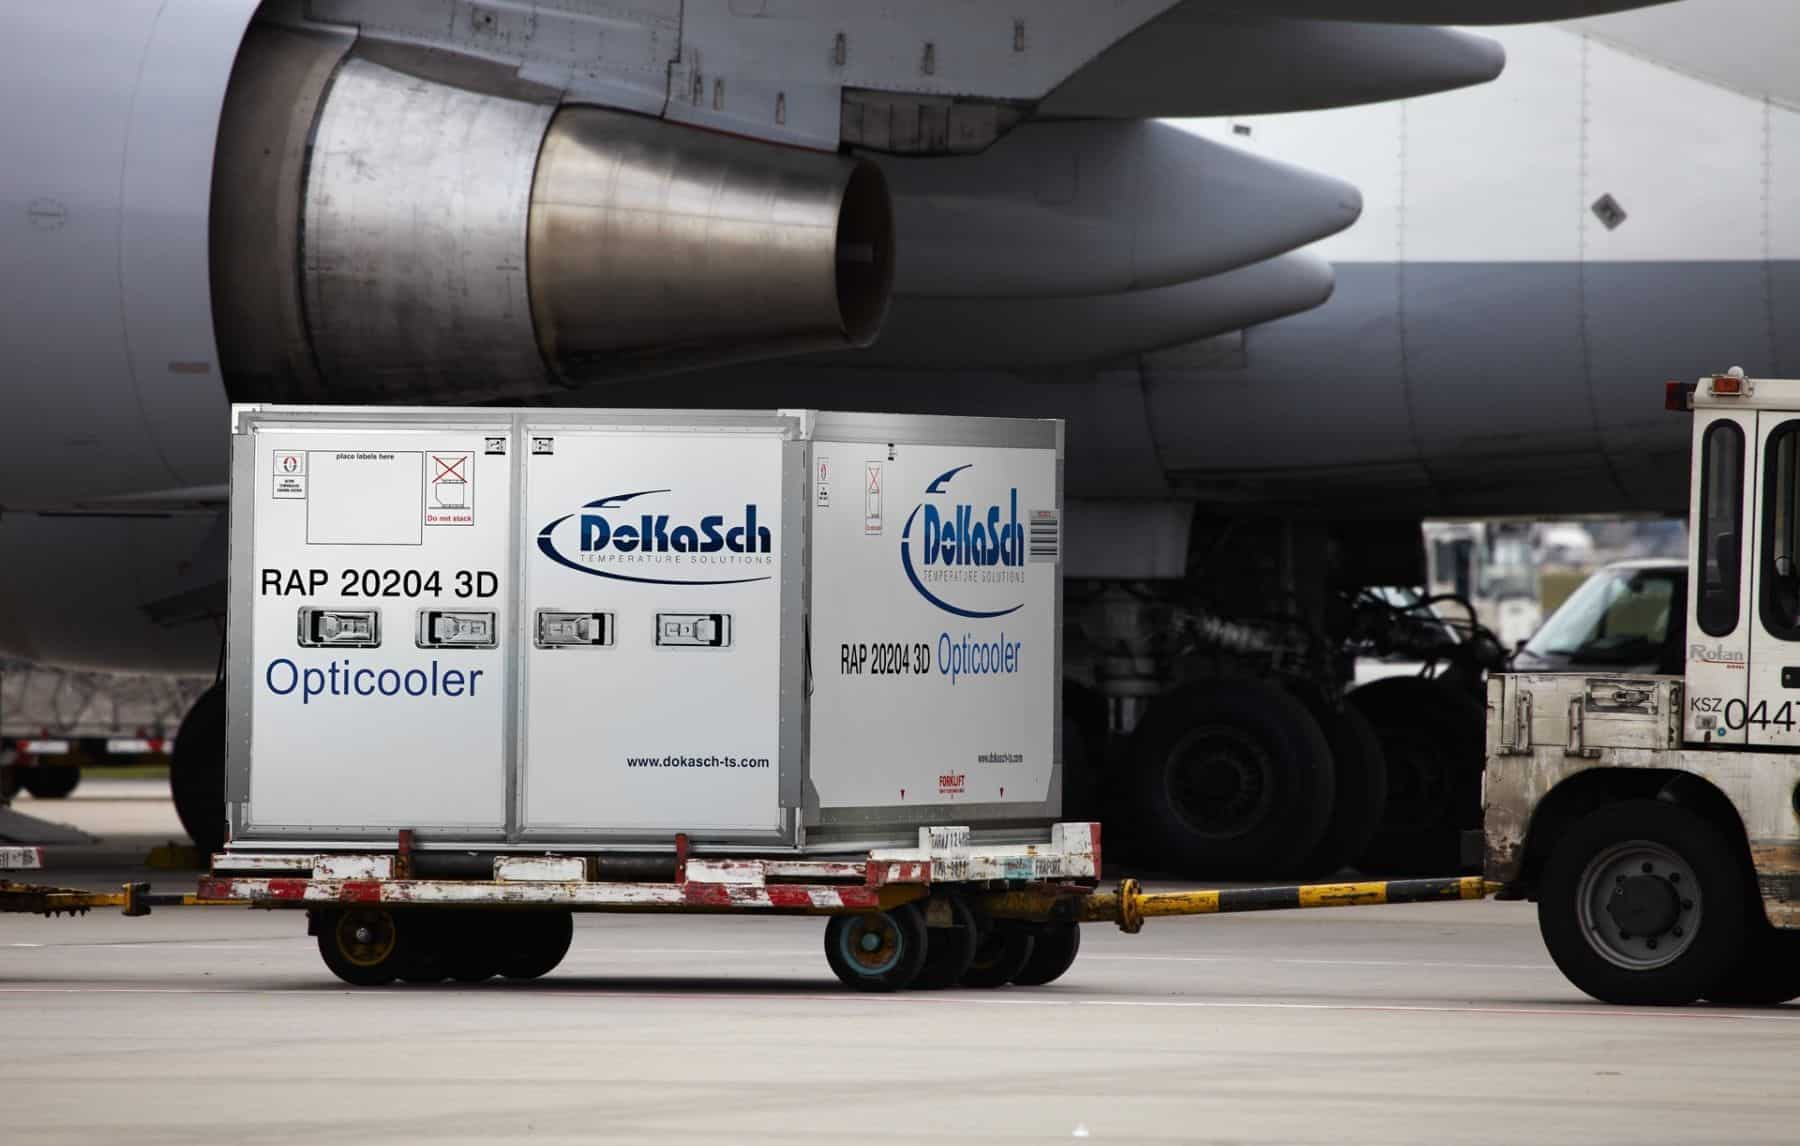 Delta Cargo's new high-tech cooler allows safer transportation of vaccines